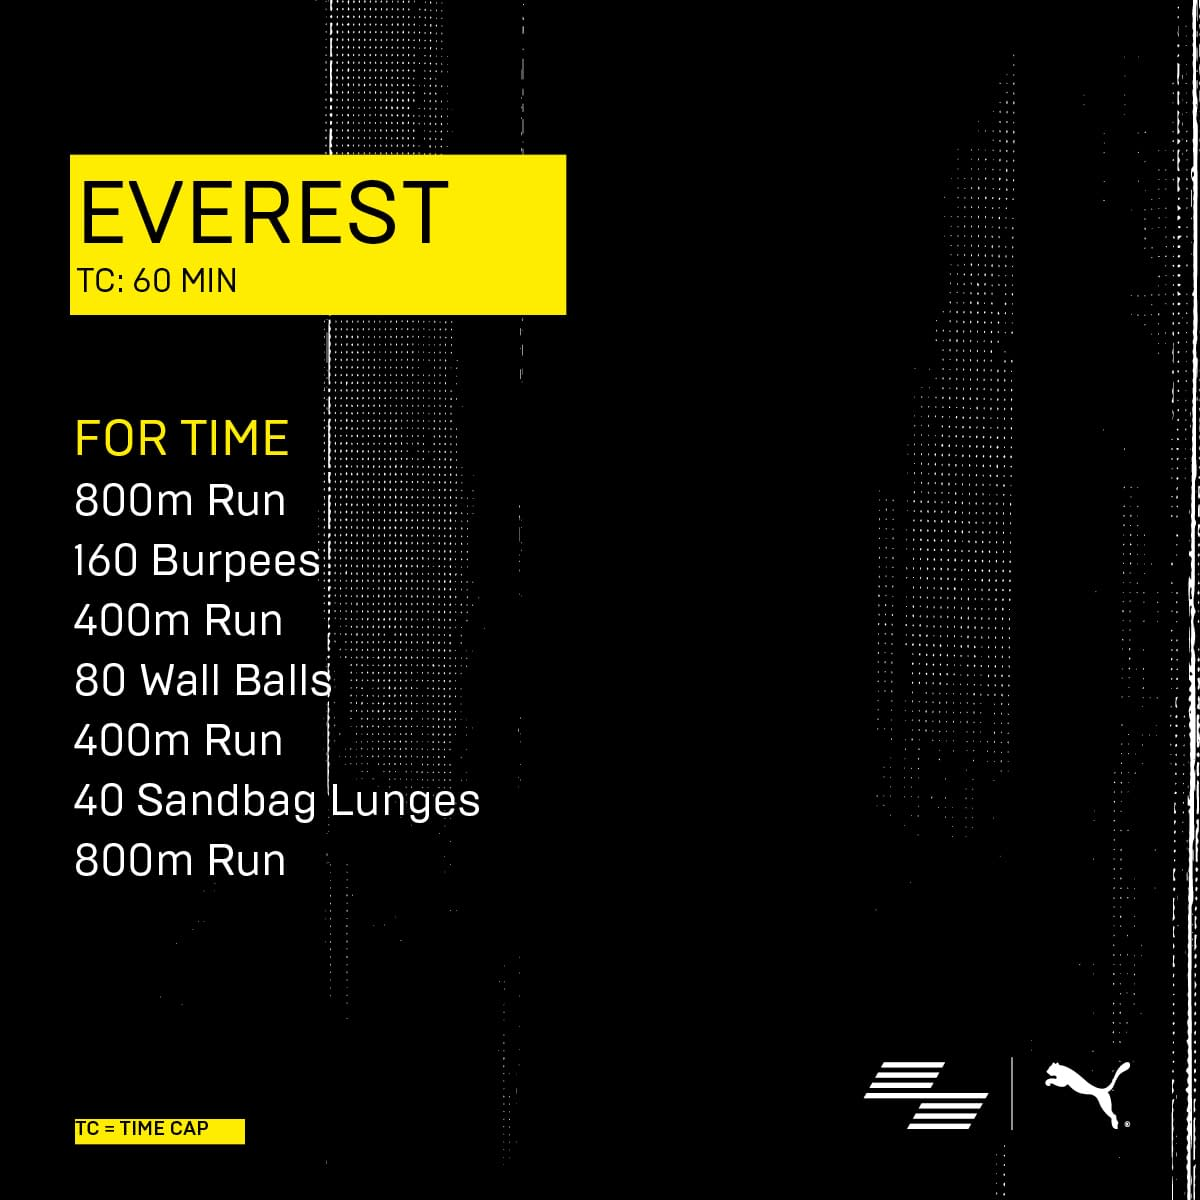 Everest Workout of the Week